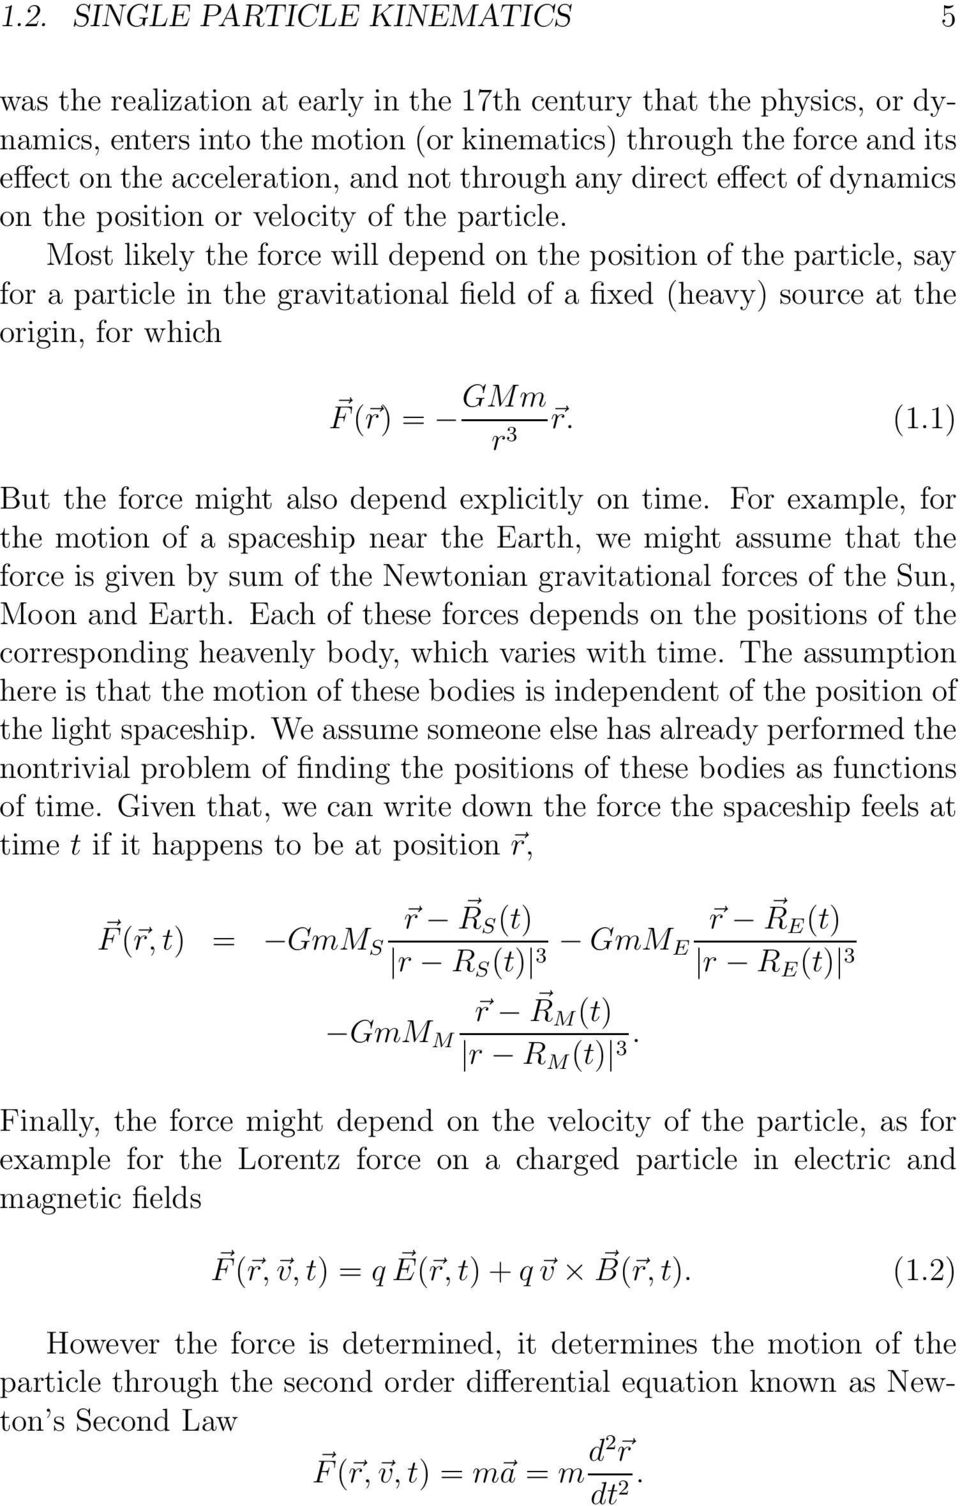 Most likely the force will depend on the position of the particle, say for a particle in the gravitational field of a fixed (heavy) source at the origin, for which F ( r) = GMm r. (1.